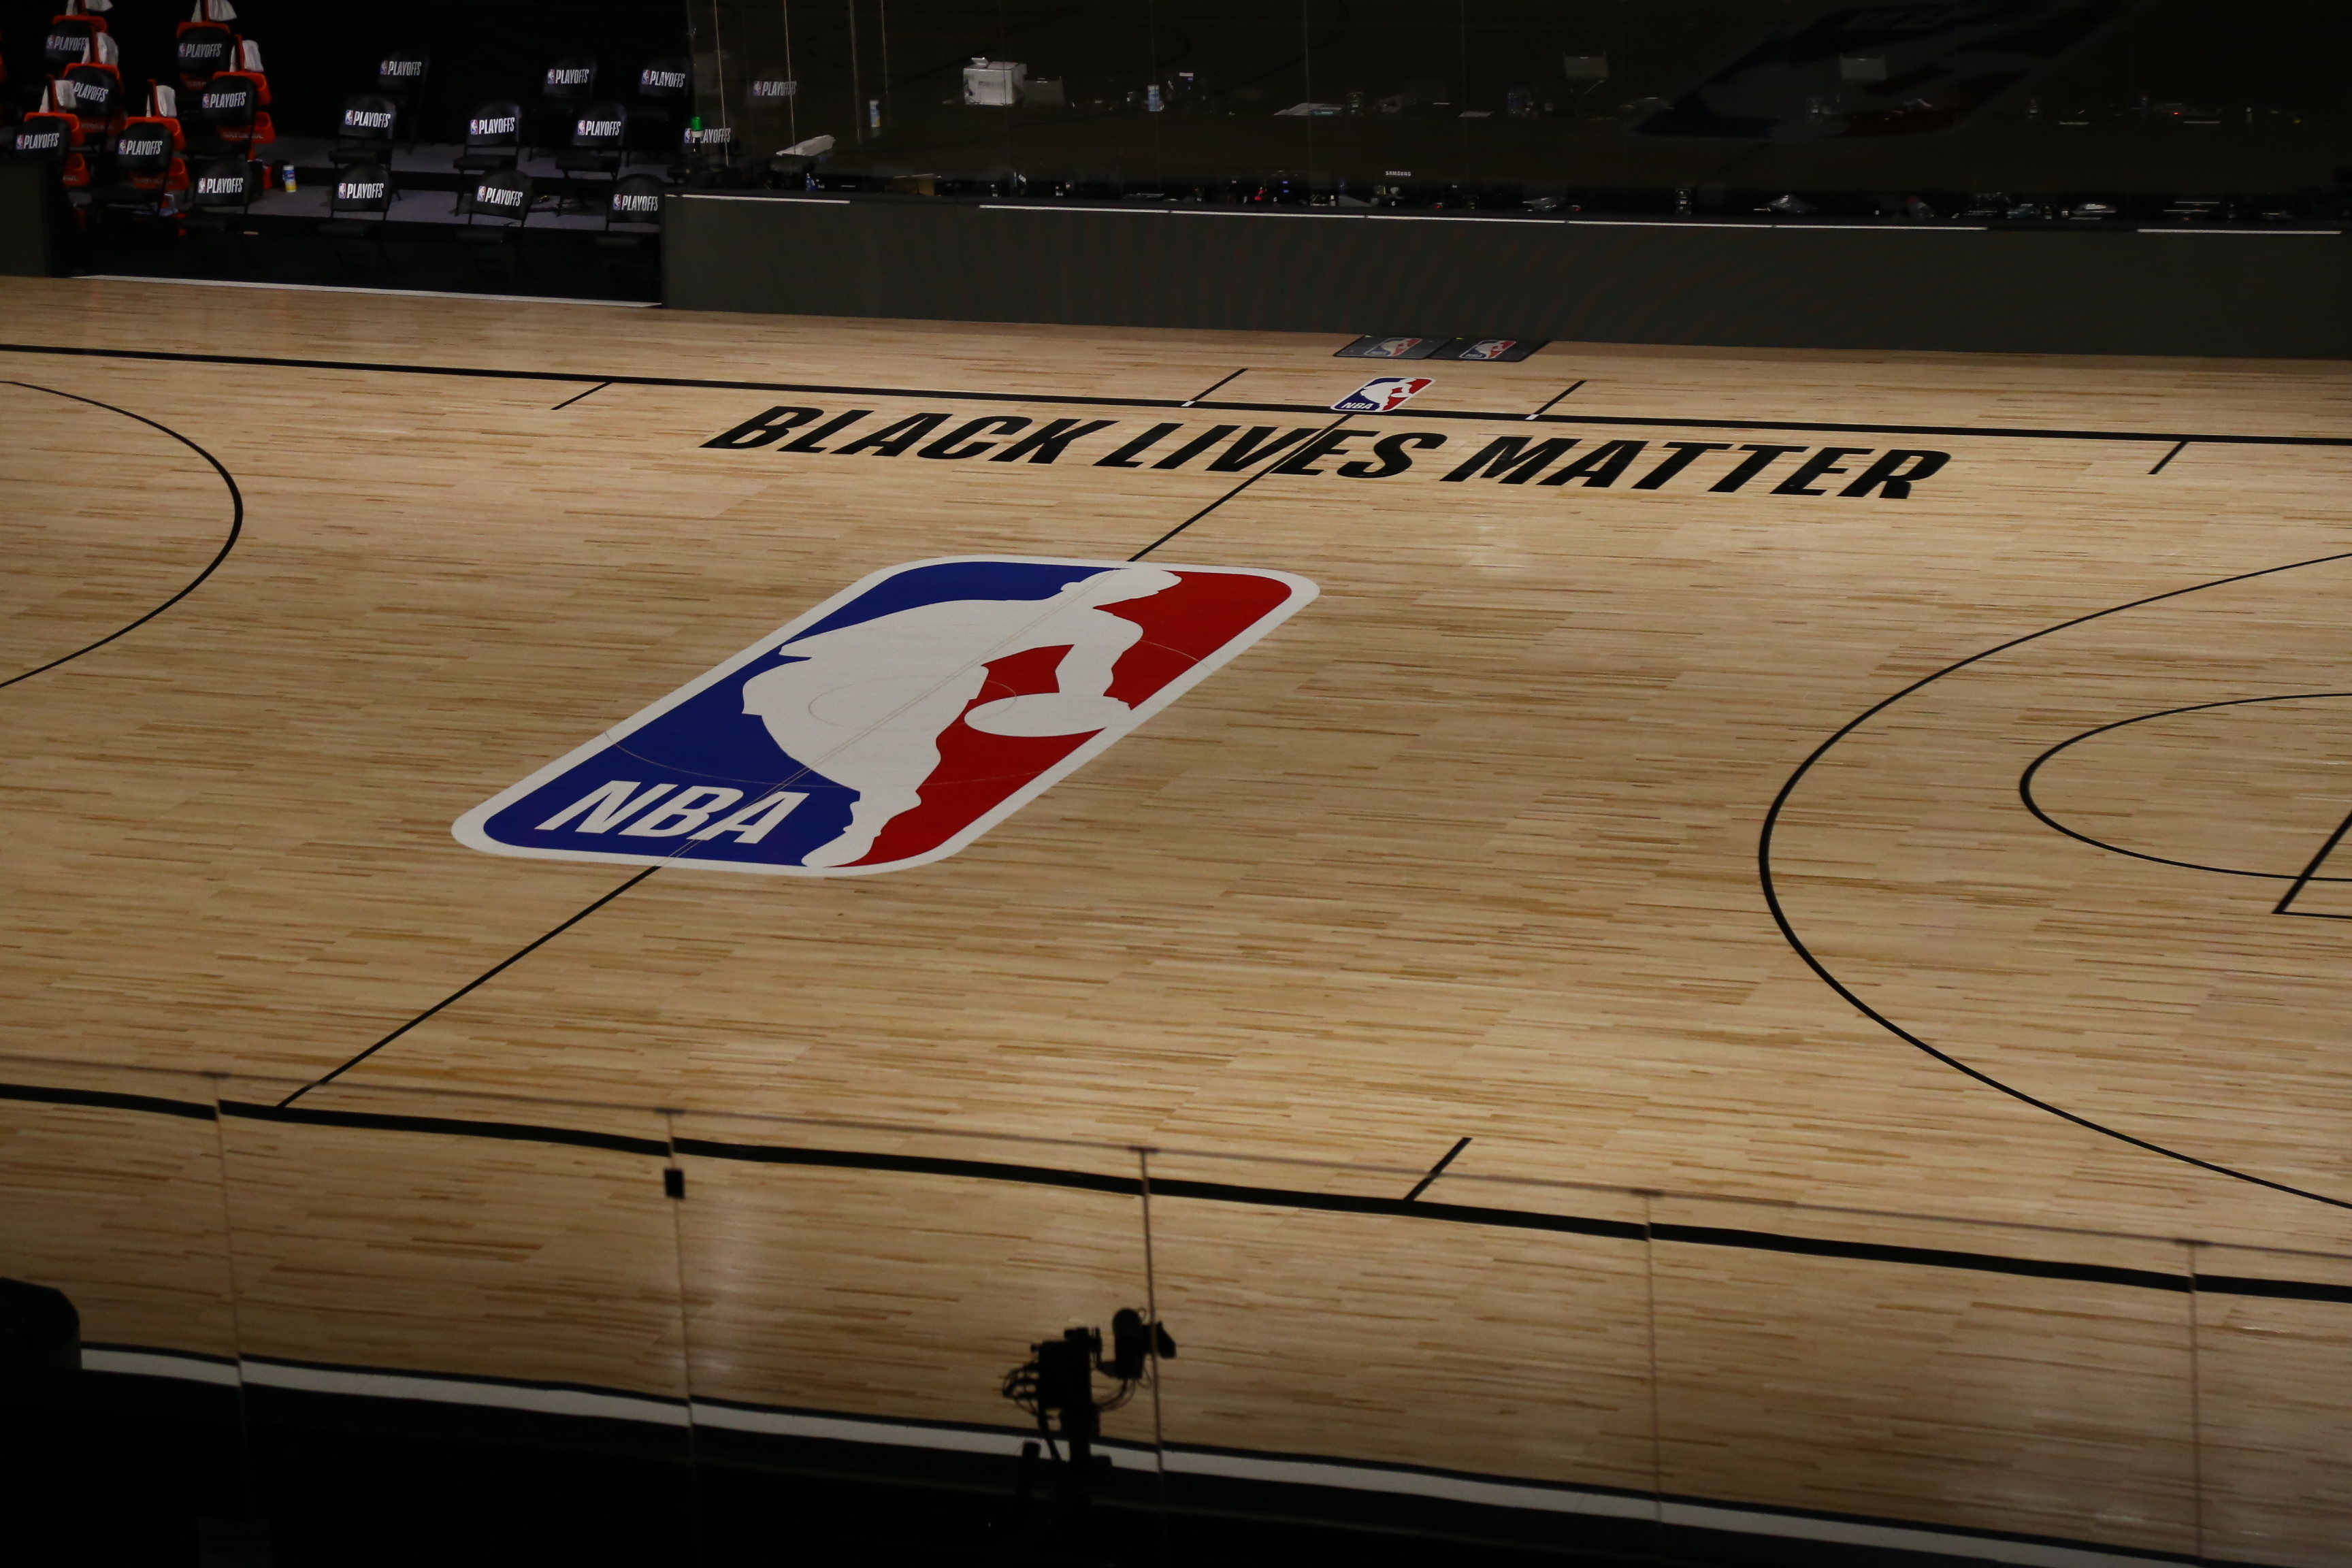 A general view inside The Field House before Game 5 of an NBA basketball first-round playoff series, between the Oklahoma City Thunder and Houston Rockets, Wednesday, Aug. 26, 2020, in Lake Buena Vista, Fla. NBA players made their strongest statement yet against racial injustice Wednesday when the Milwaukee Bucks didn't take the floor for their playoff game against the Orlando Magic.